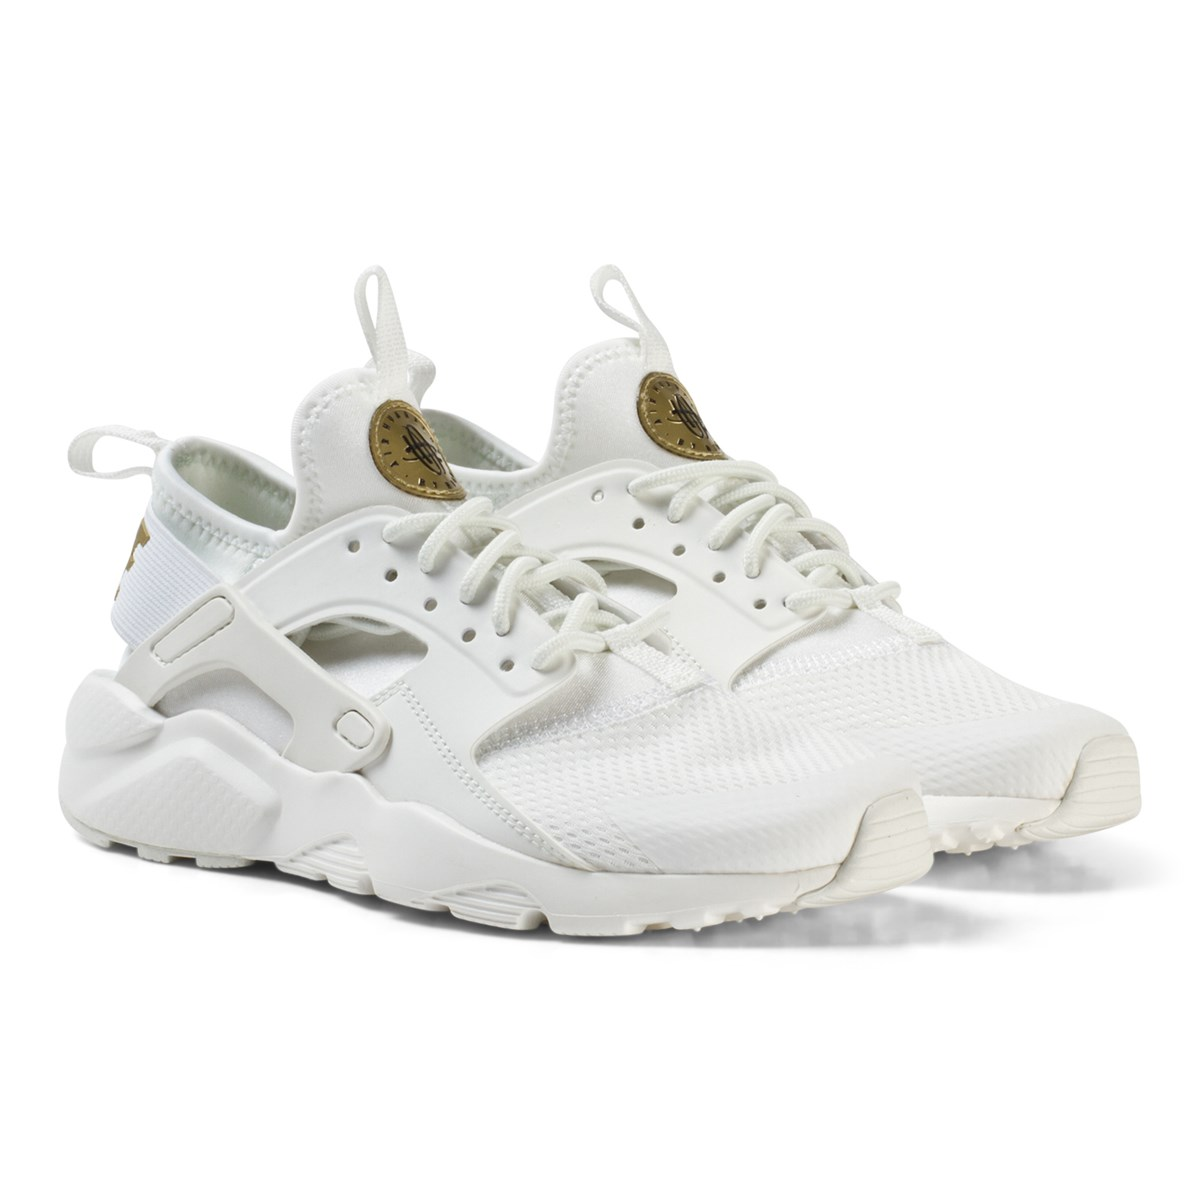 NIKE Nike Air Huarache Run Ultra Junior Sneakers White